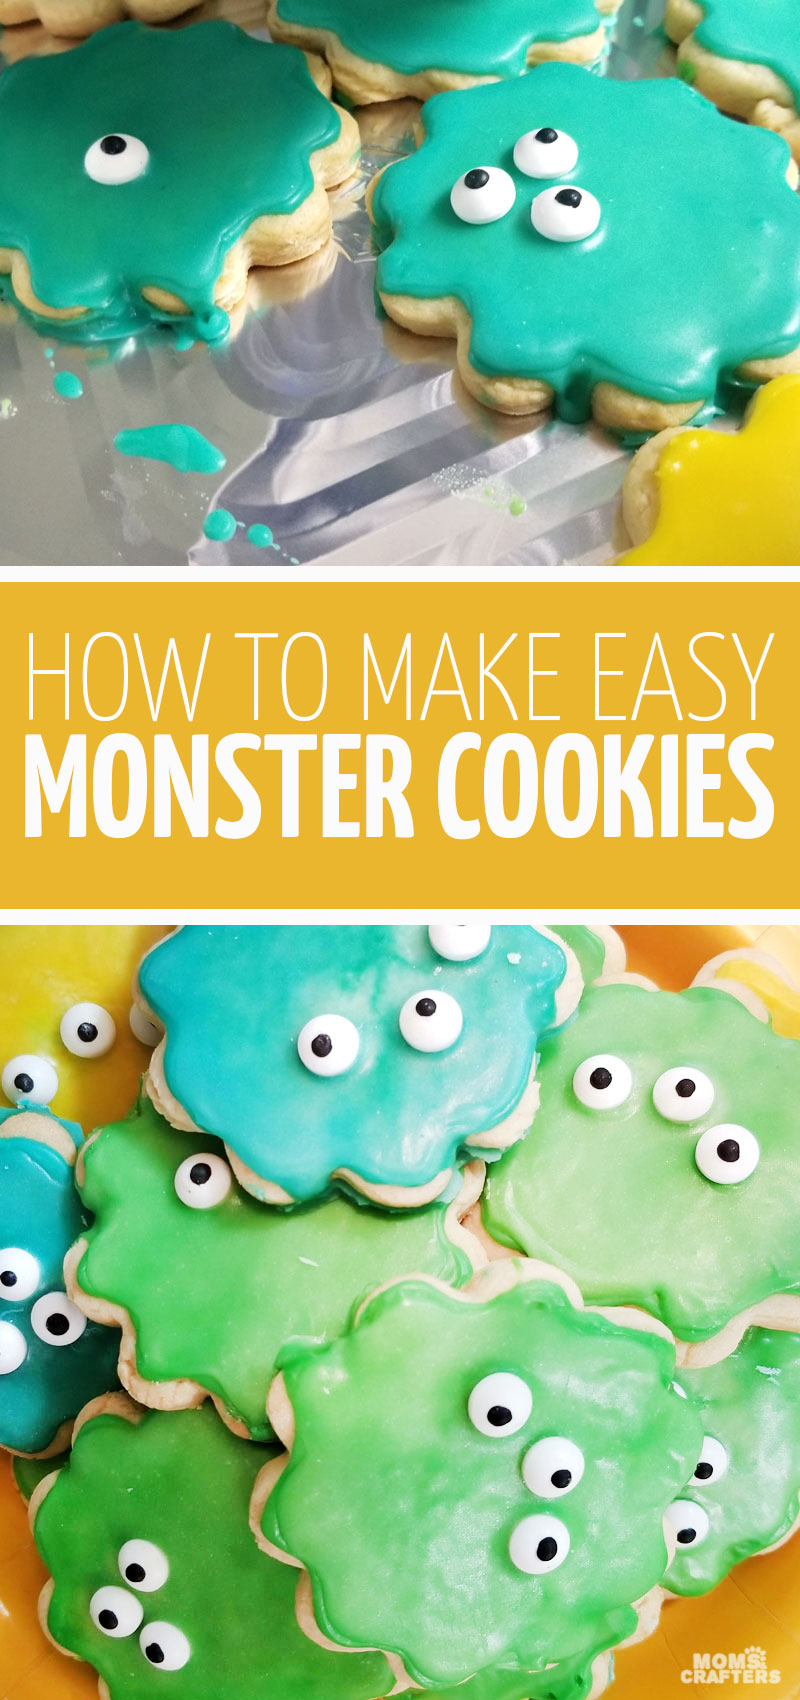 Check out these supre easy monster birthday party food ideas including these easy monster cookies using a royal icing hack and candy eyes!